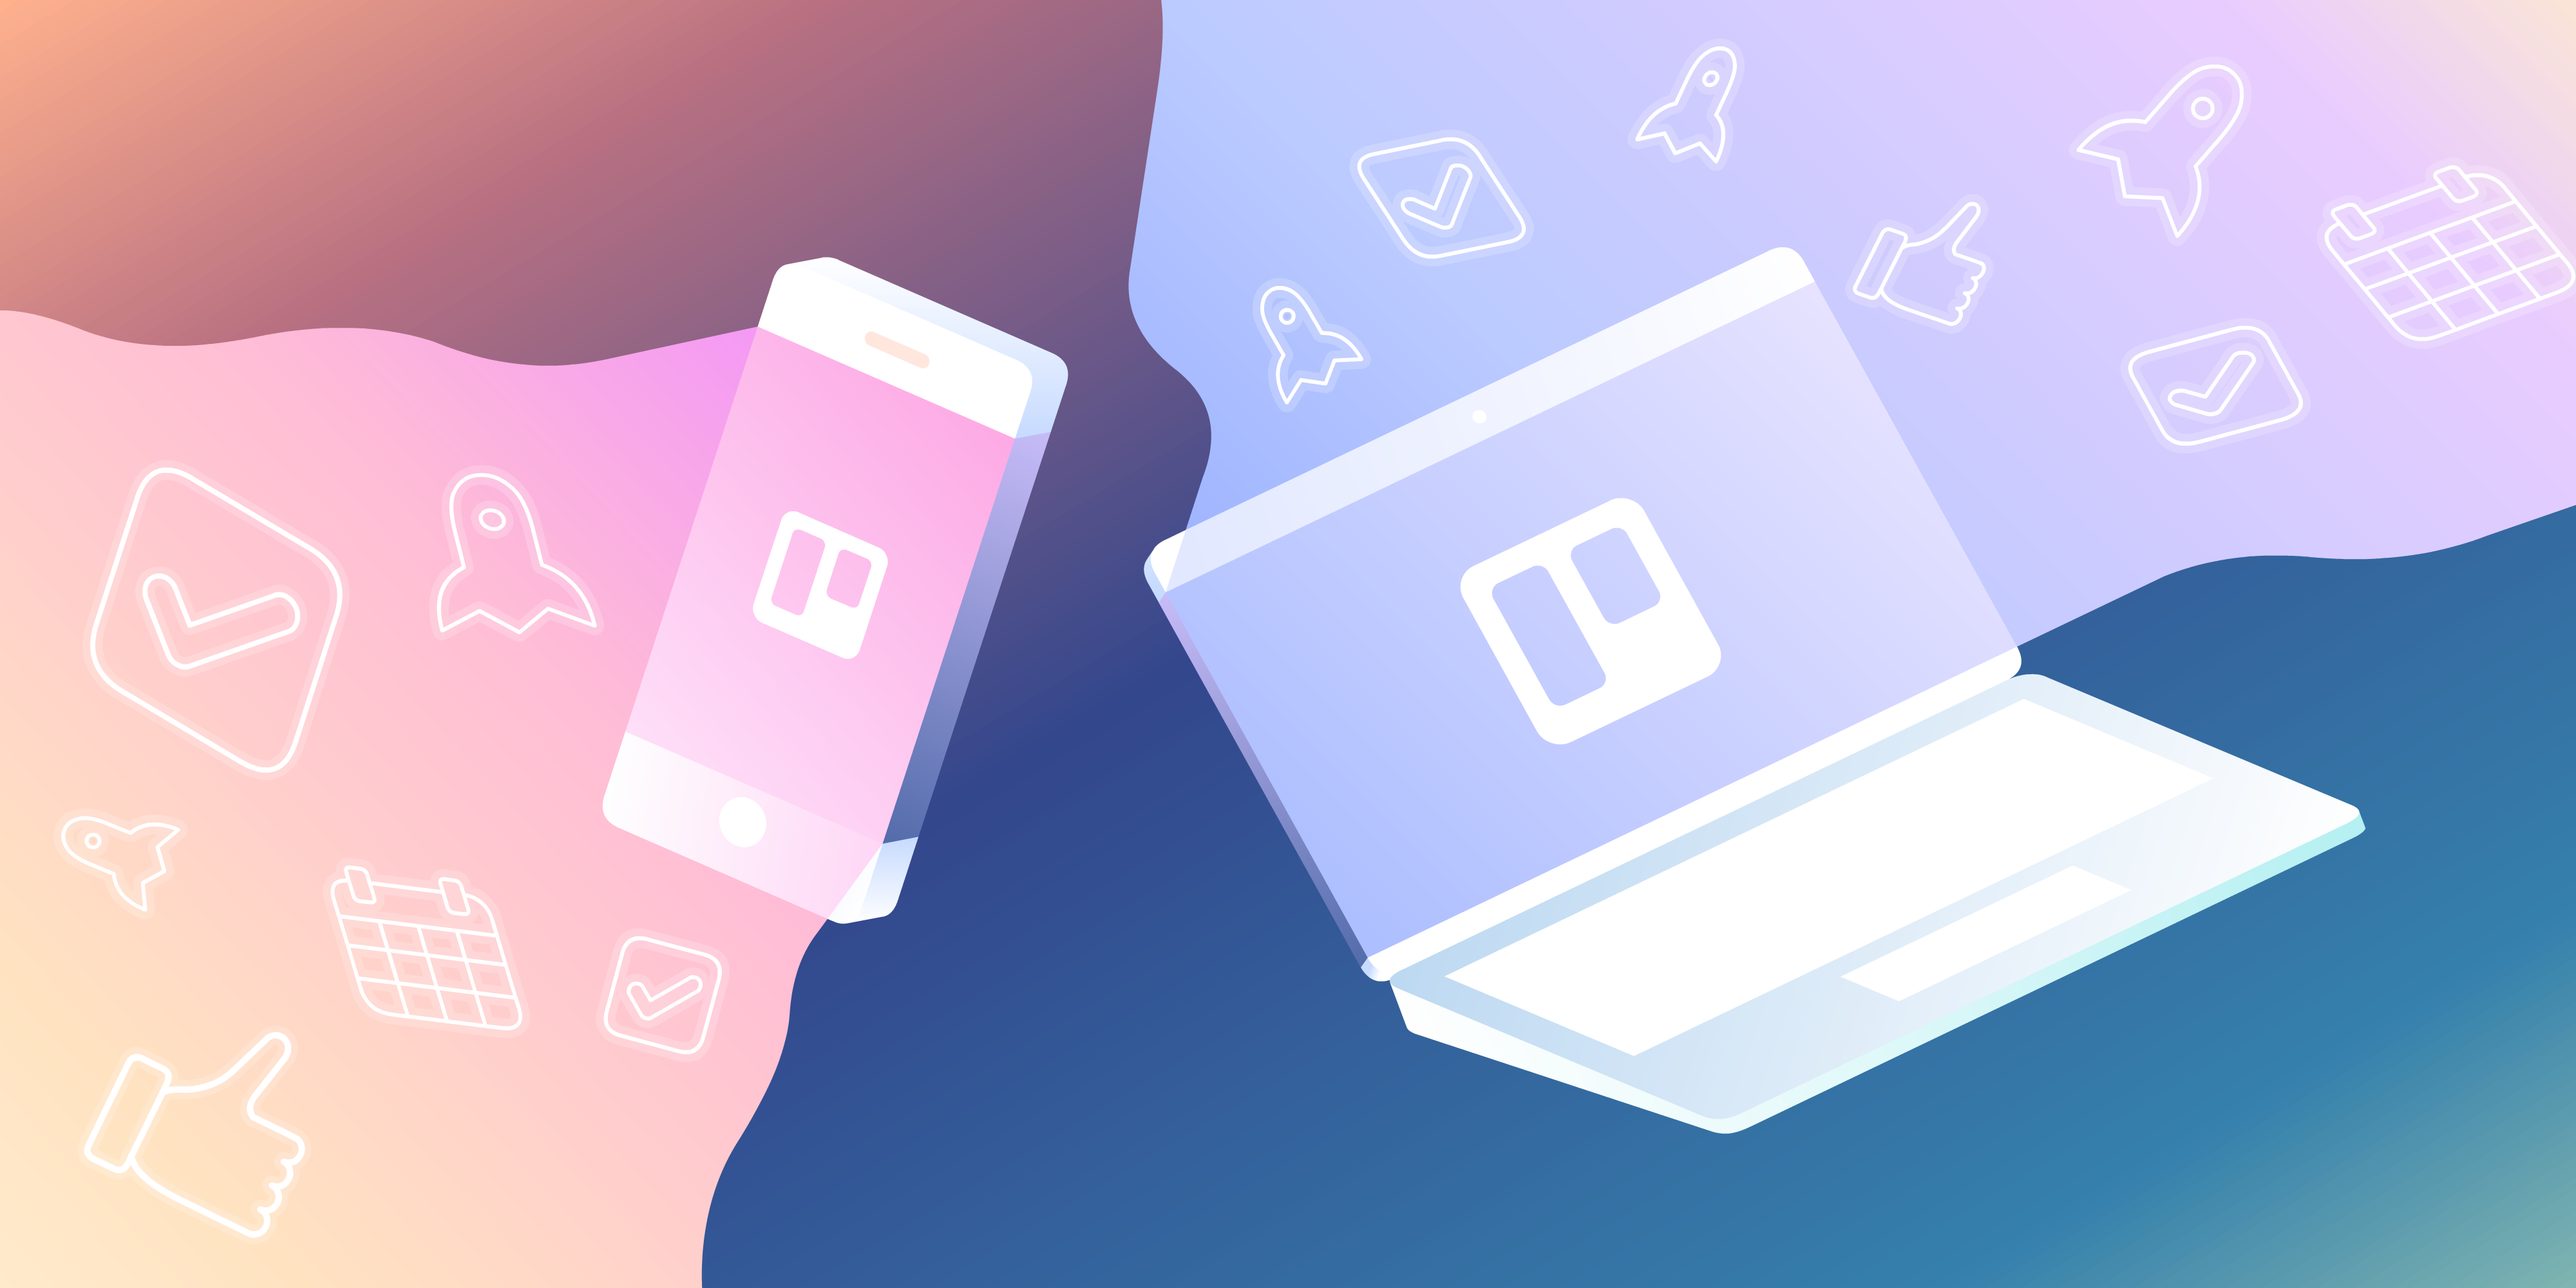 8 Blips, Tricks, And Stellar Trello Tips To Try This Week